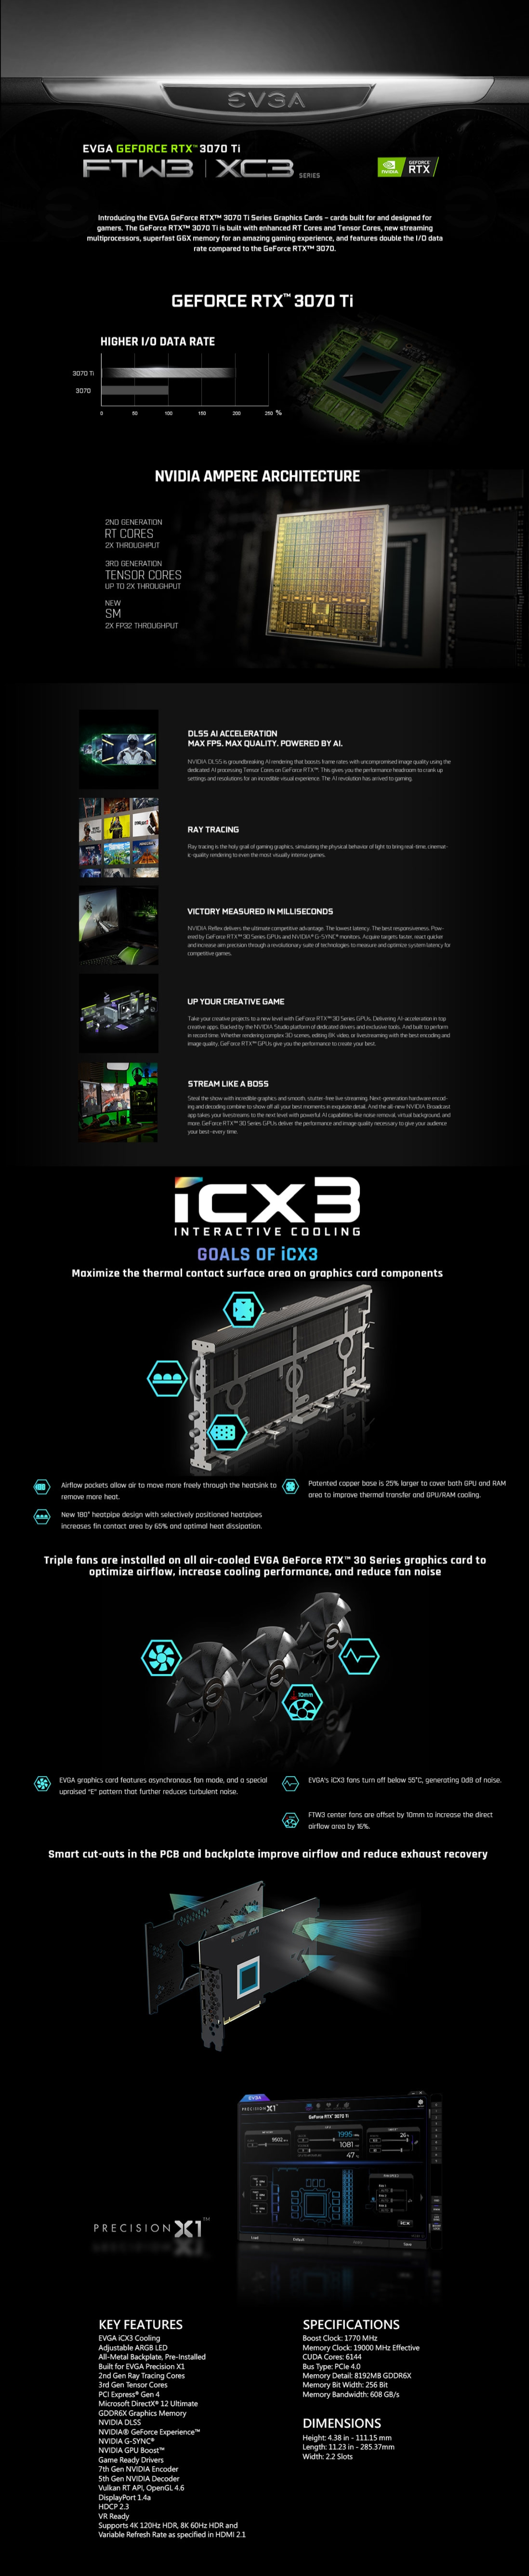 A large marketing image providing additional information about the product eVGA GeForce RTX 3070 Ti XC3 Ultra 8GB GDDR6X  - Additional alt info not provided